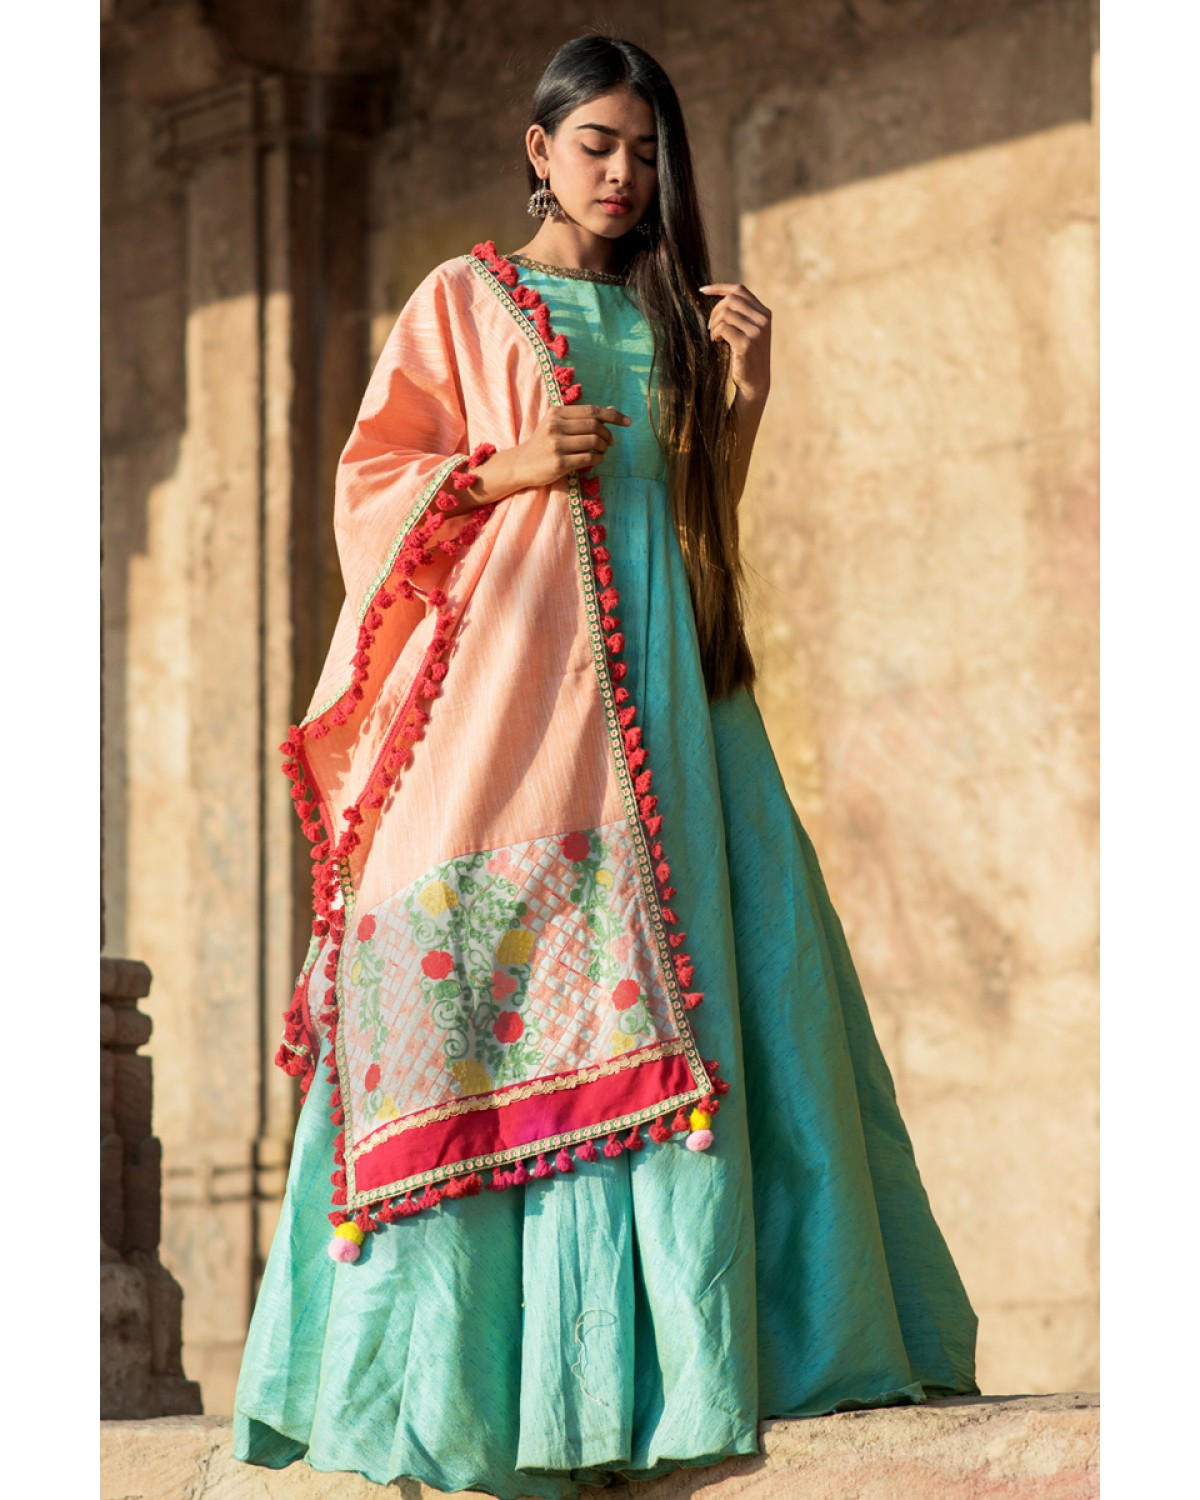 Peach Floral Linen Festive Embroidered Dupatta